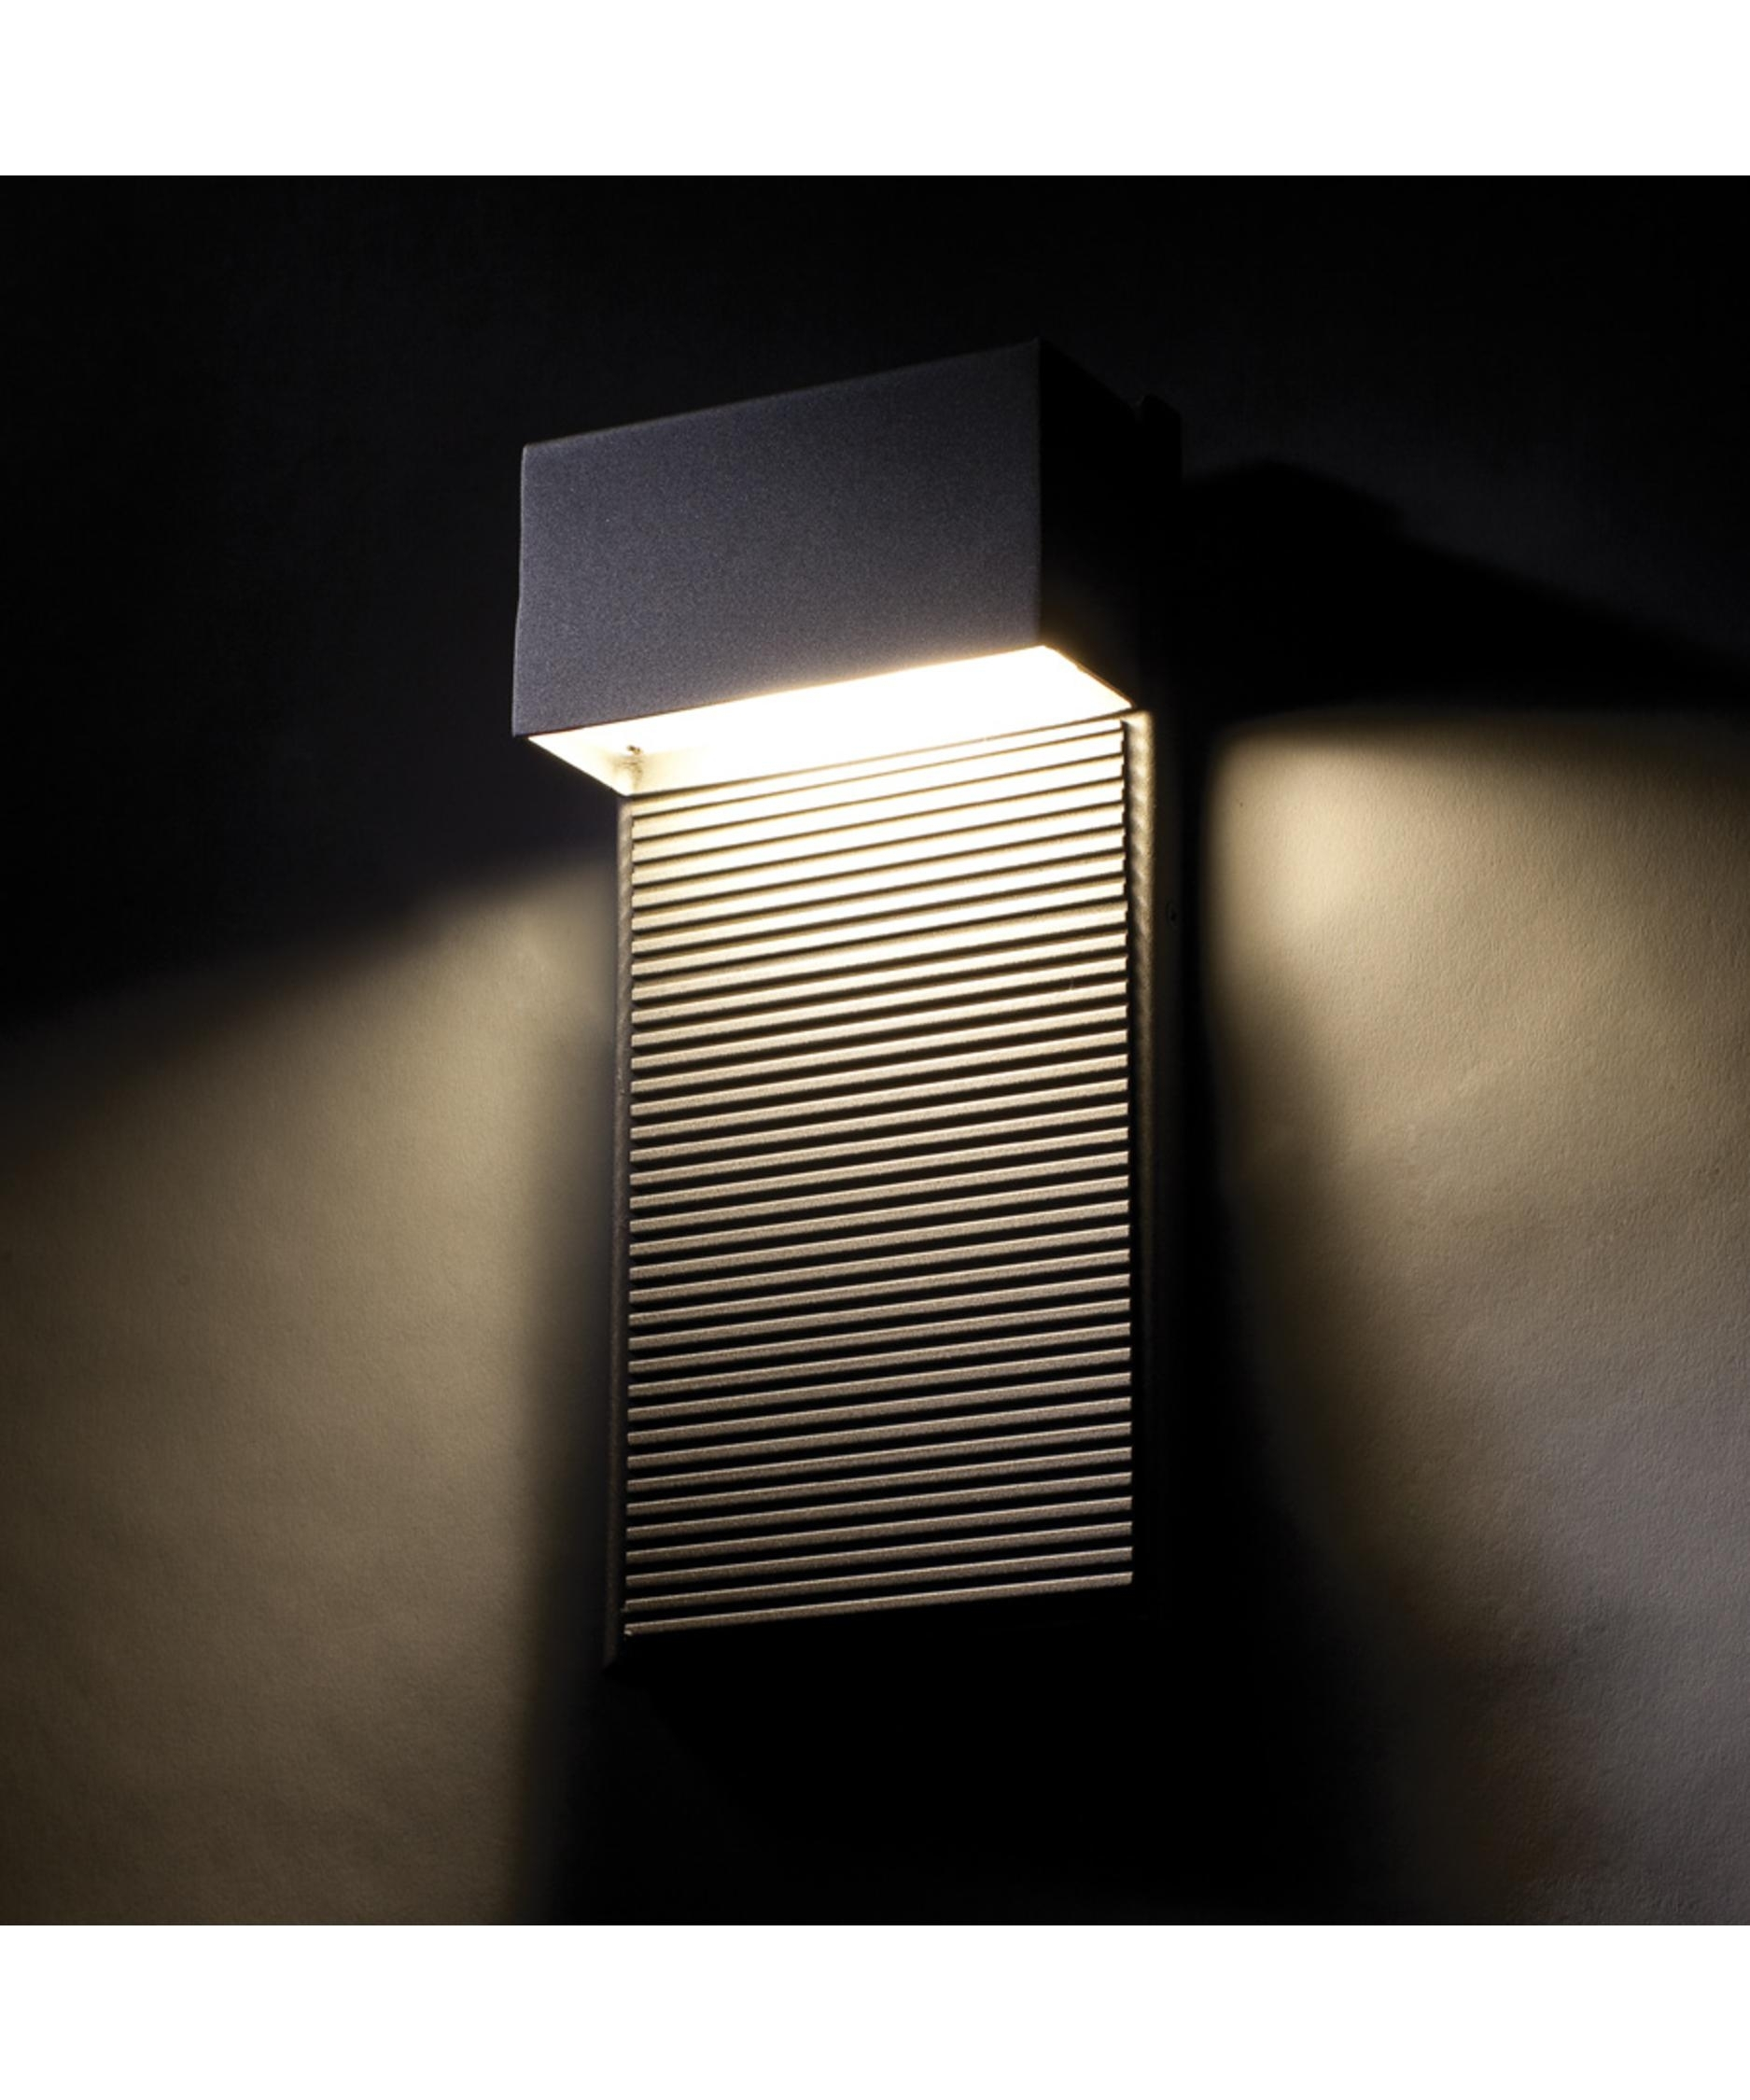 Outdoor : Light Modern Outdoor Wall Lantern Carriage Lamps Bronze Within Modern And Contemporary Outdoor Lighting Sconces (View 11 of 15)